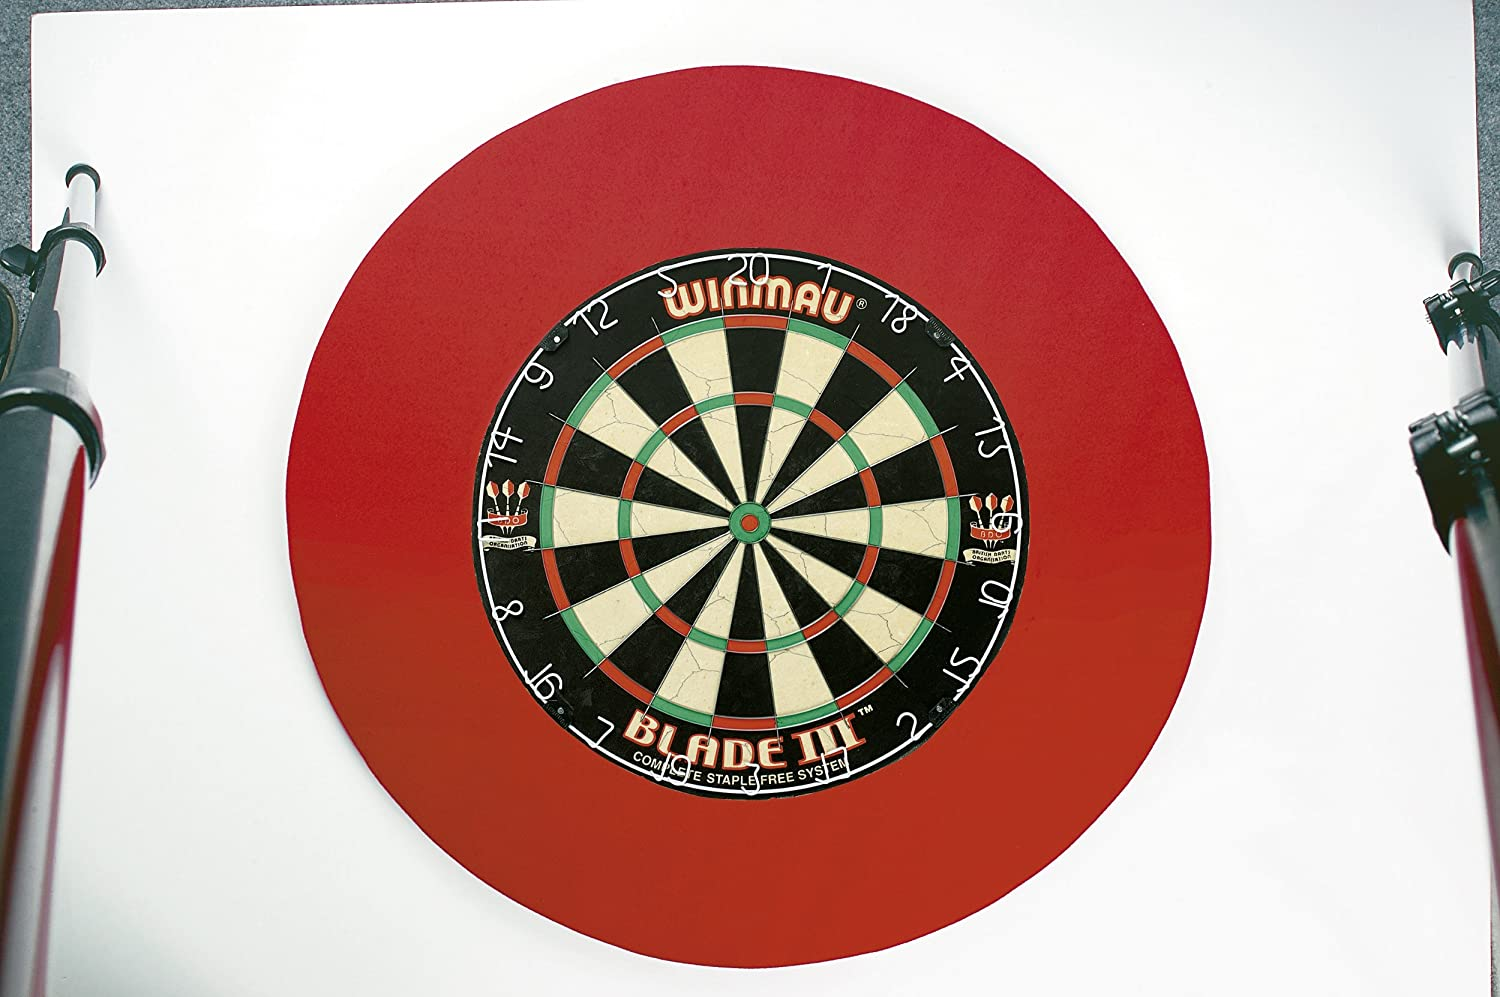 Dartboard Surround/Catchring in ROT Premierdarts